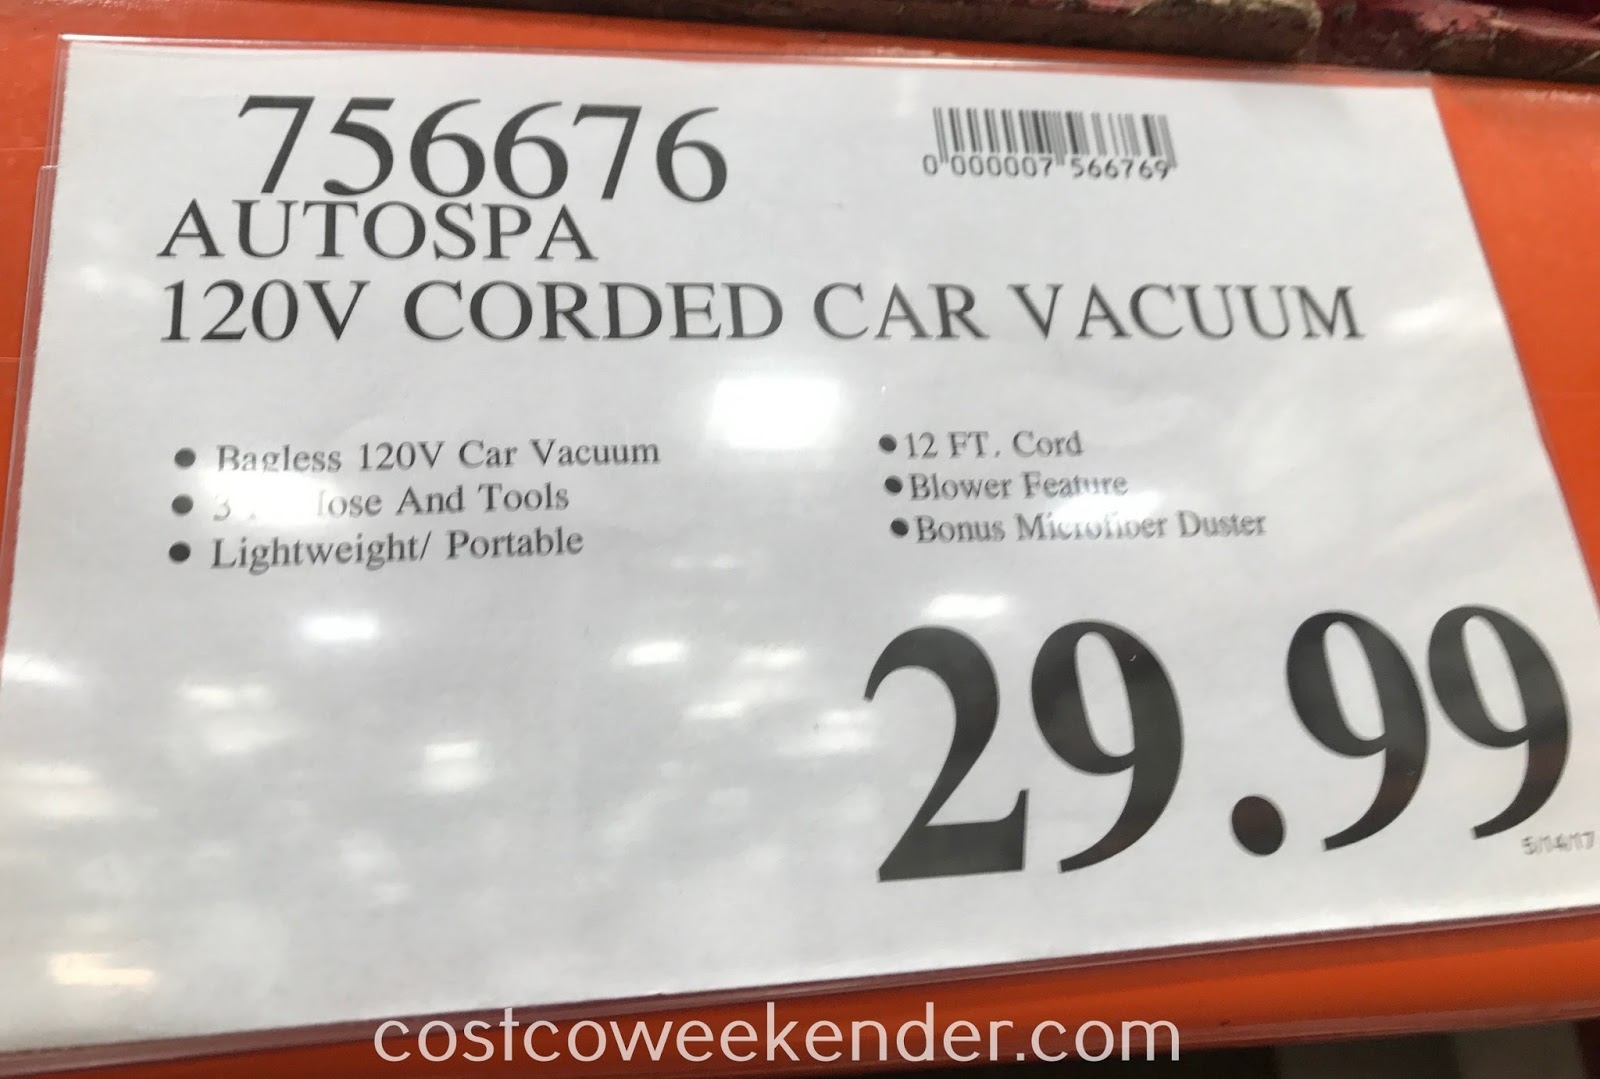 Deal for the Autospa Auto-Vac 120v Bagless Vacuum at Costco